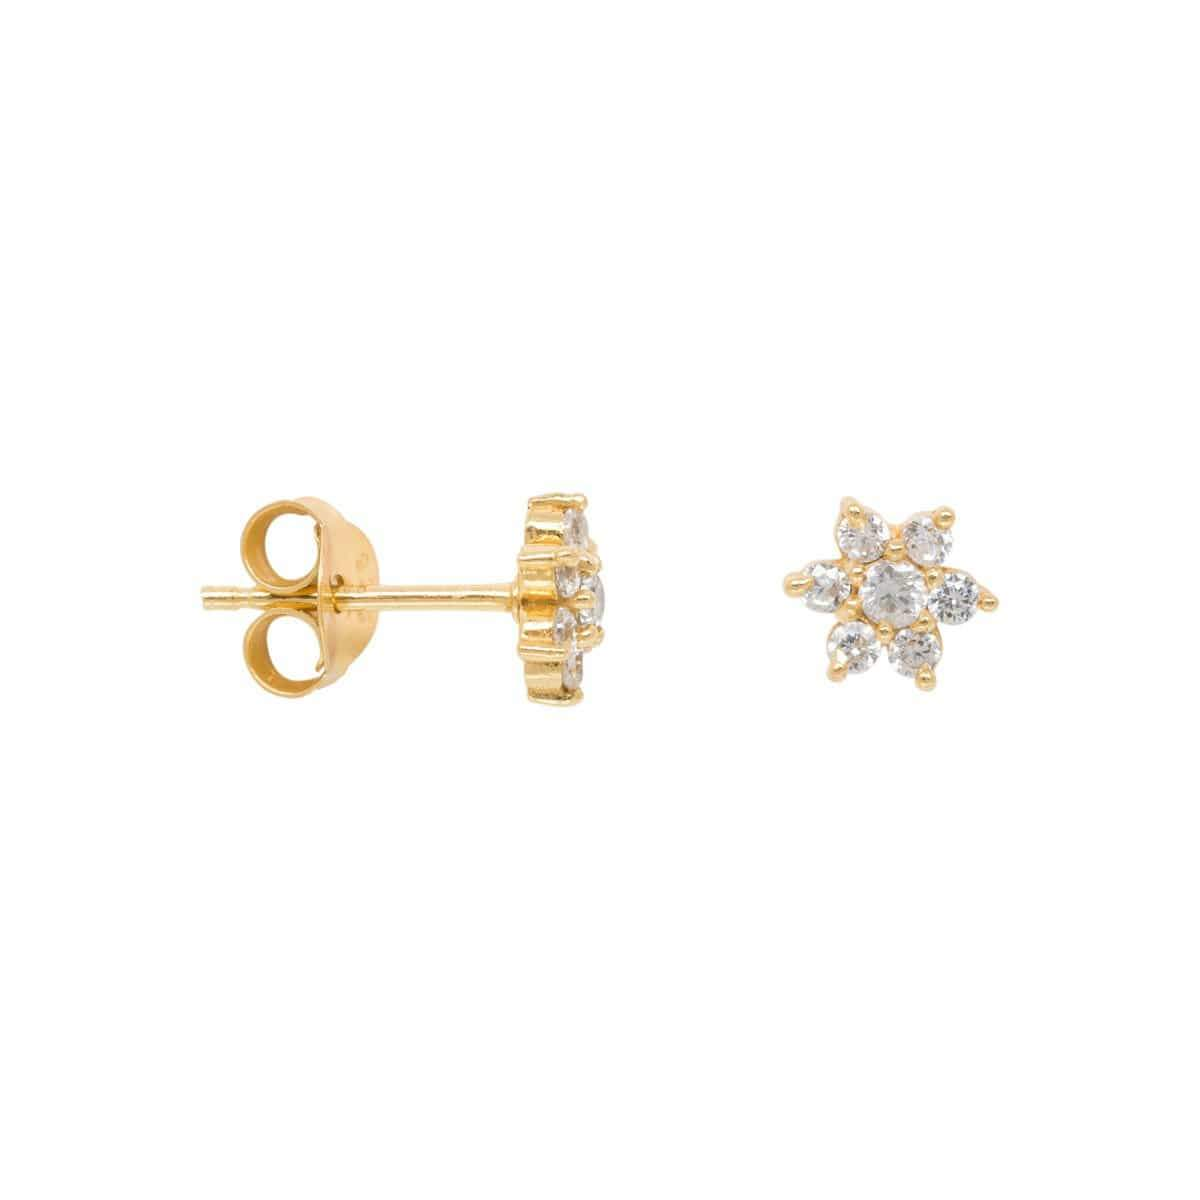 Trendjuwelier Bemelmans - Eline Rosina Zirconia Flower Earrings in goldplated sterling silver